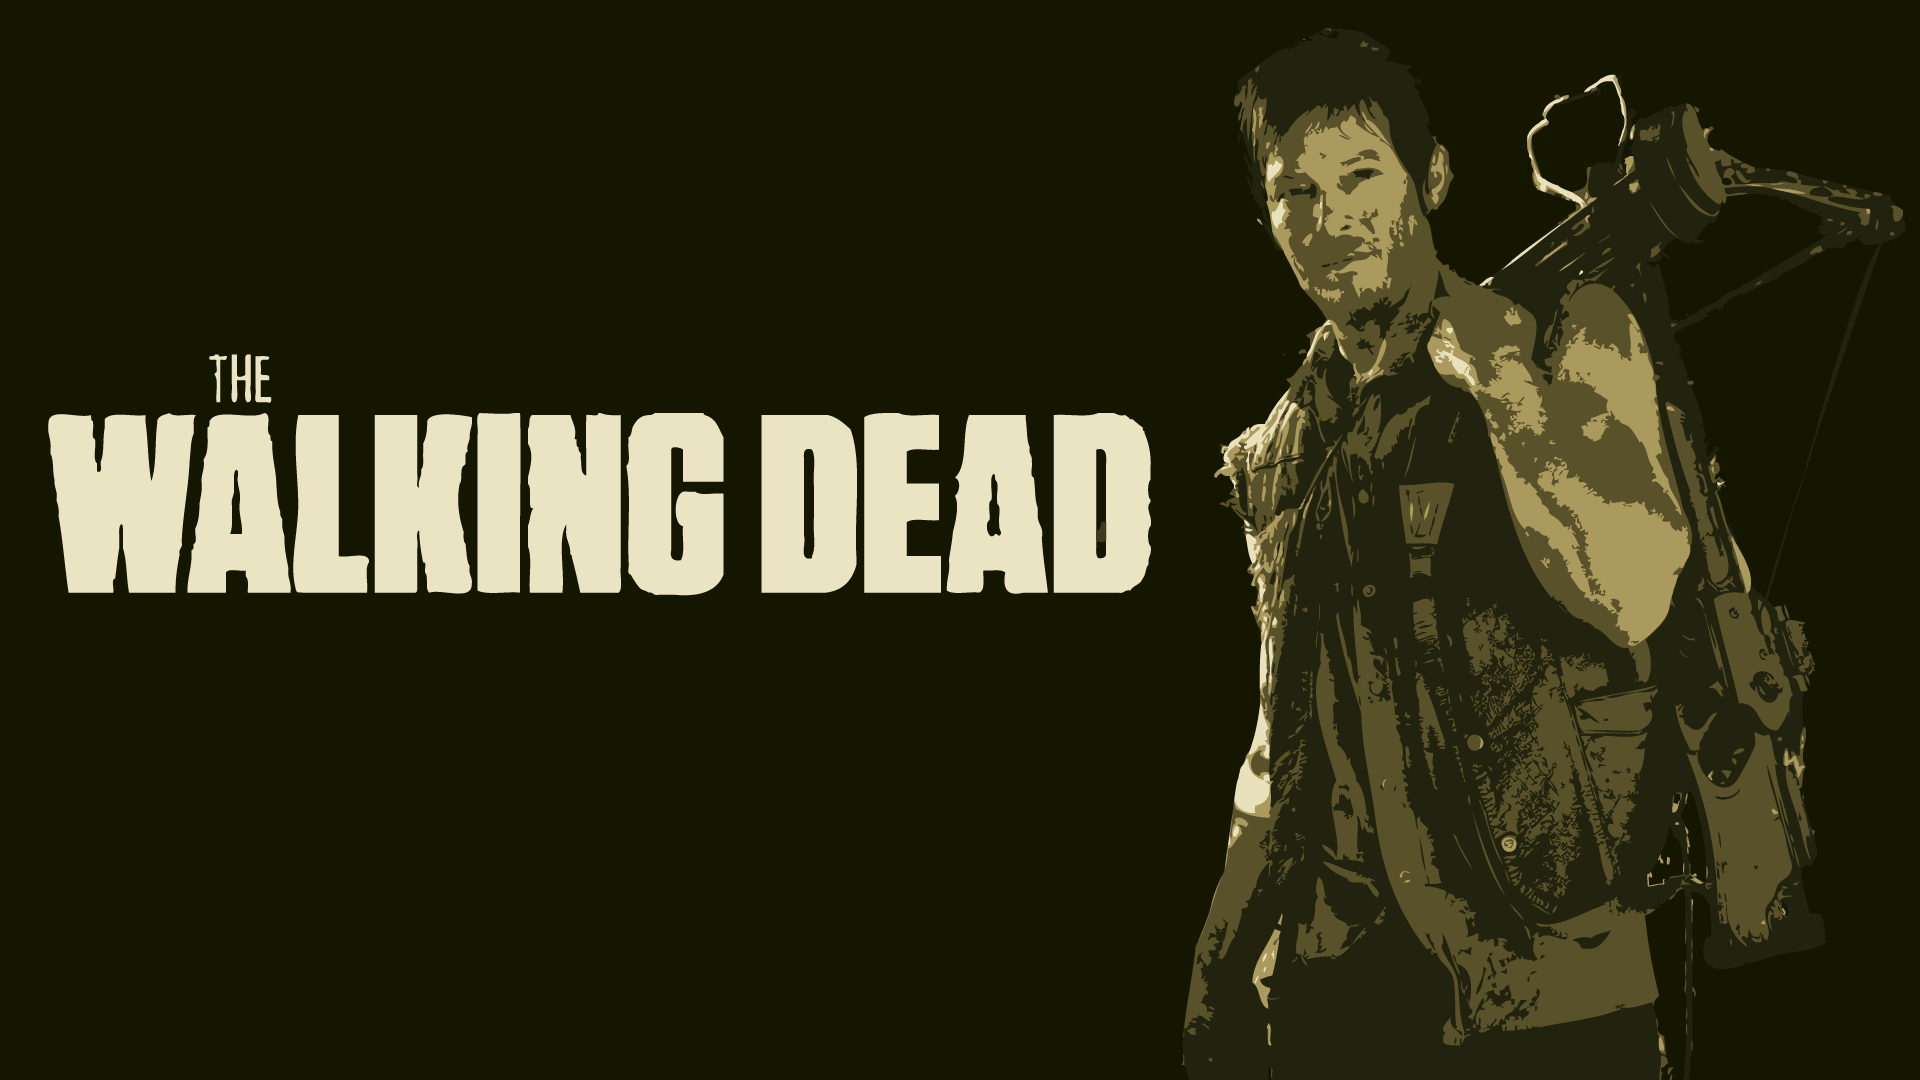 the walking dead full hd wallpaper and background image | 1920x1080